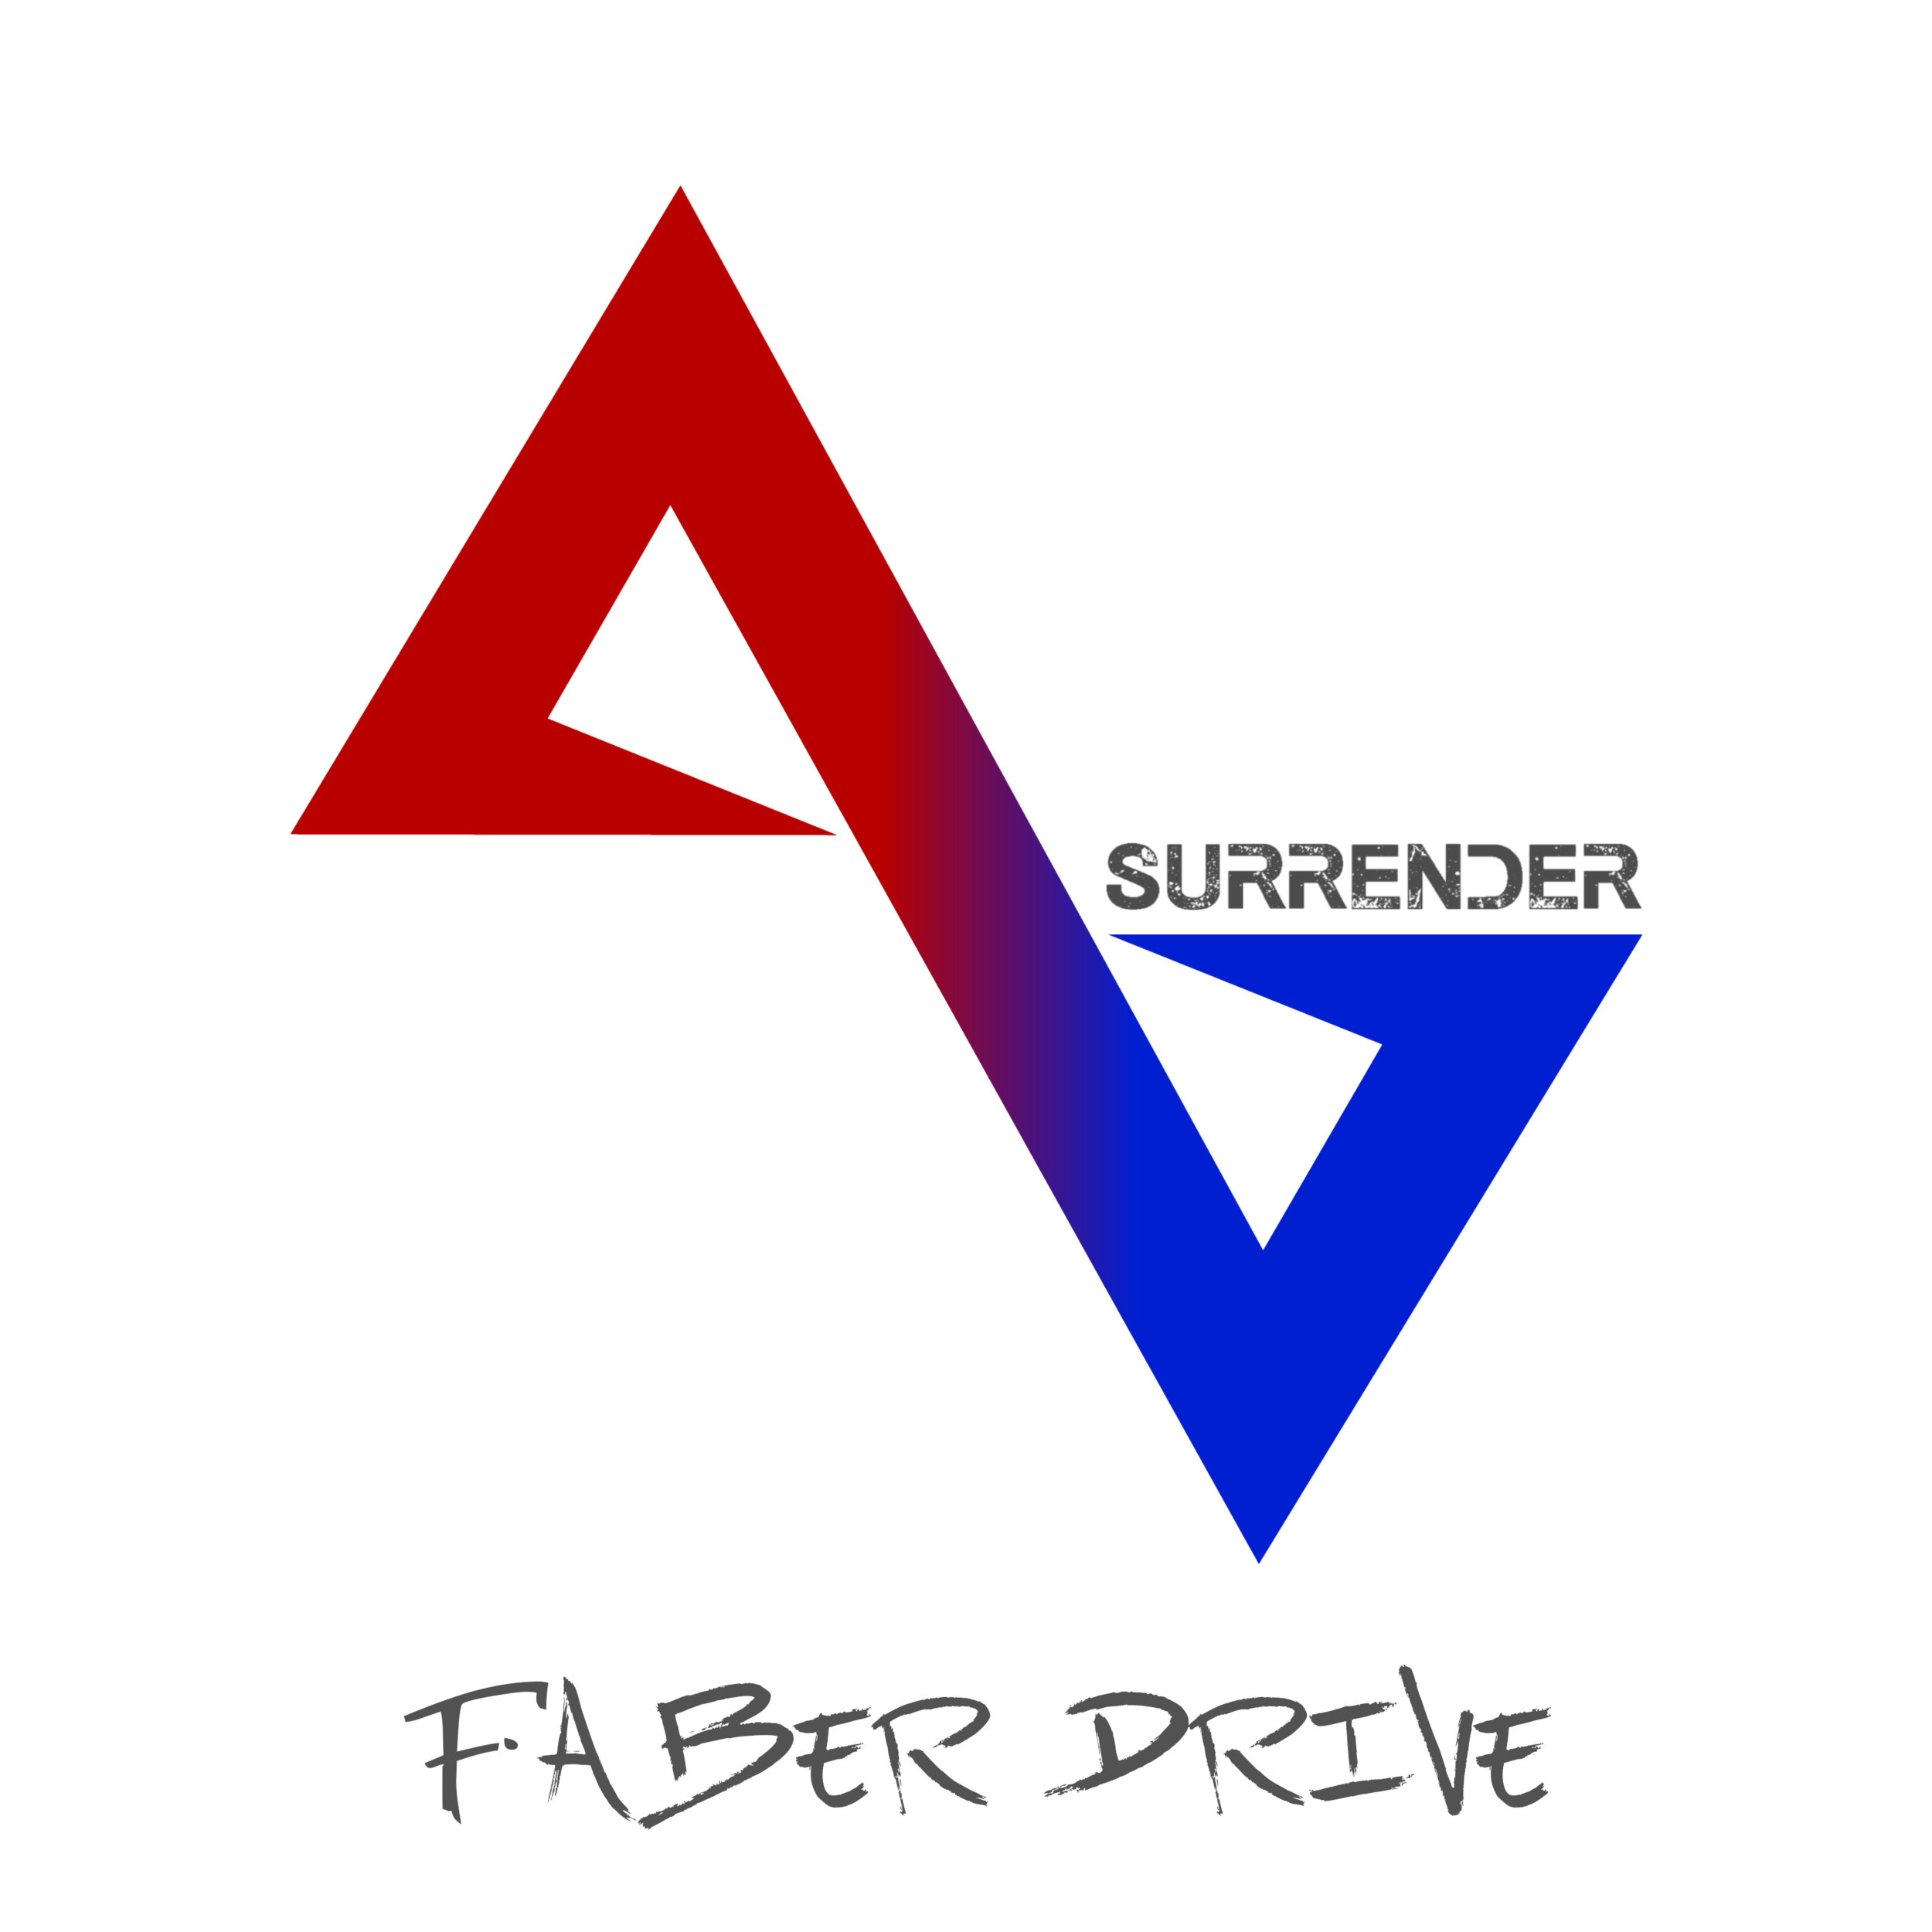 Faber-Drive-surrender-single-final copy.png